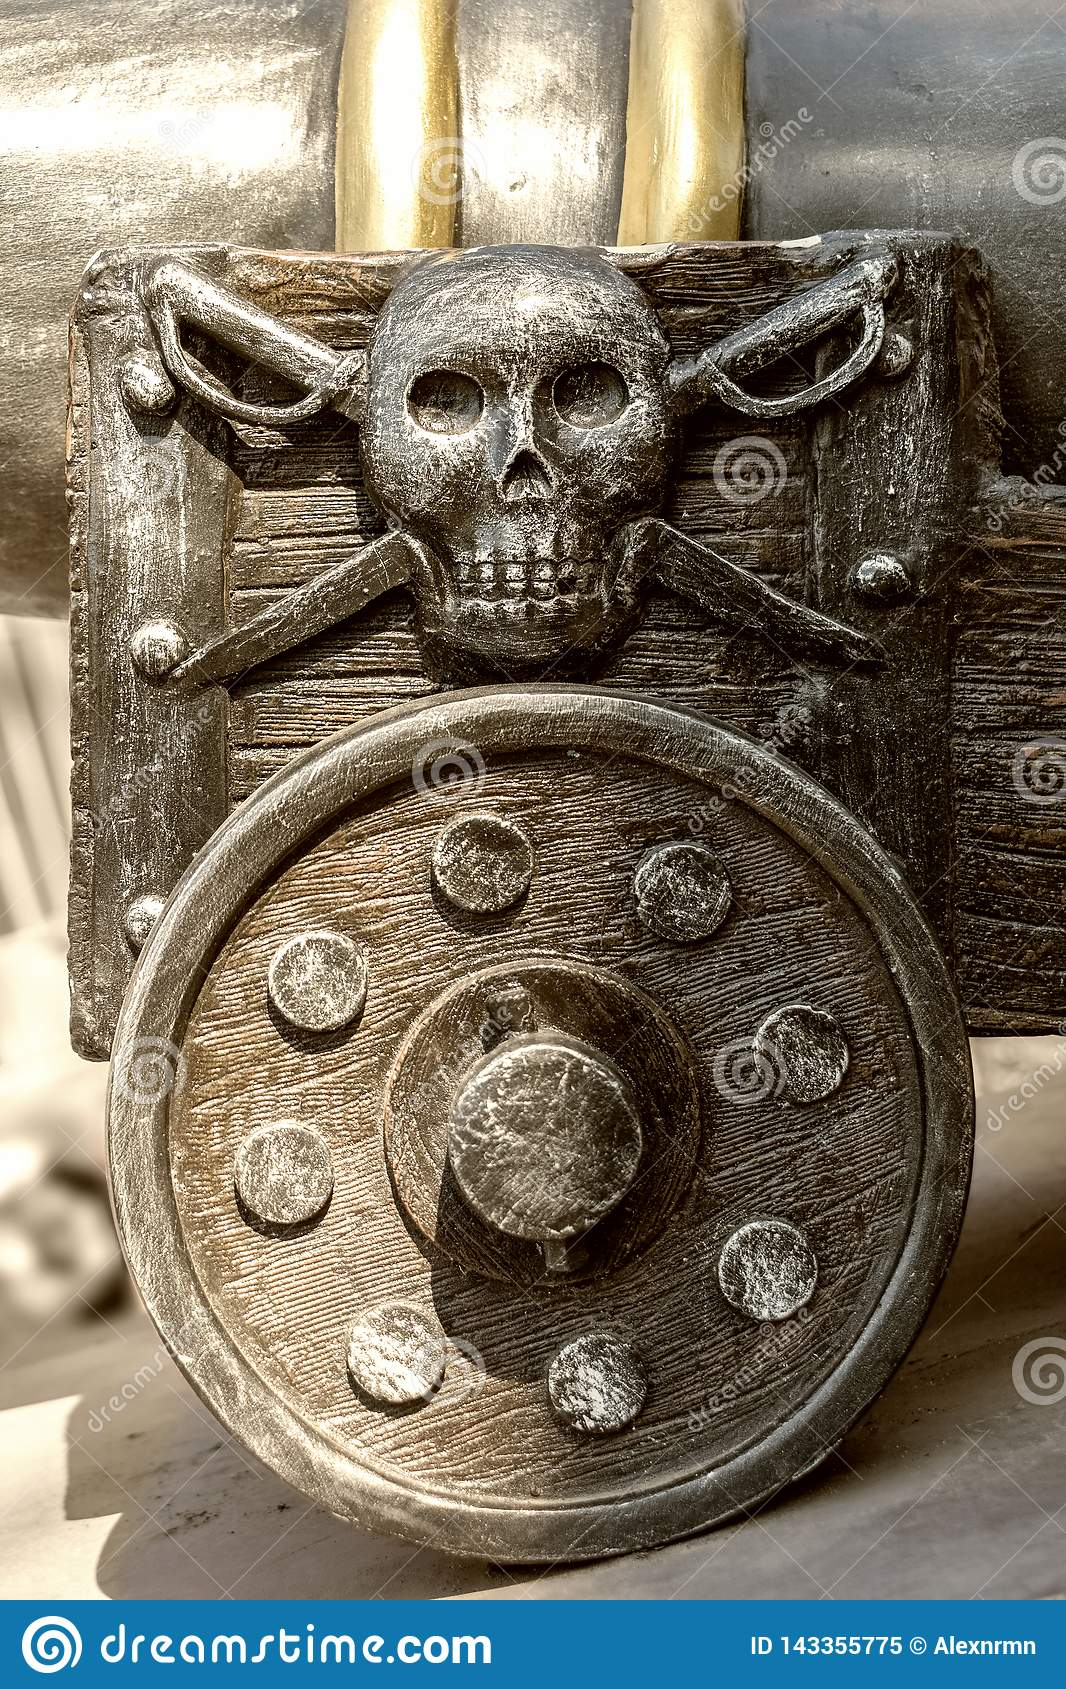 Fragment of an old gun carriage with a pirate emblem.